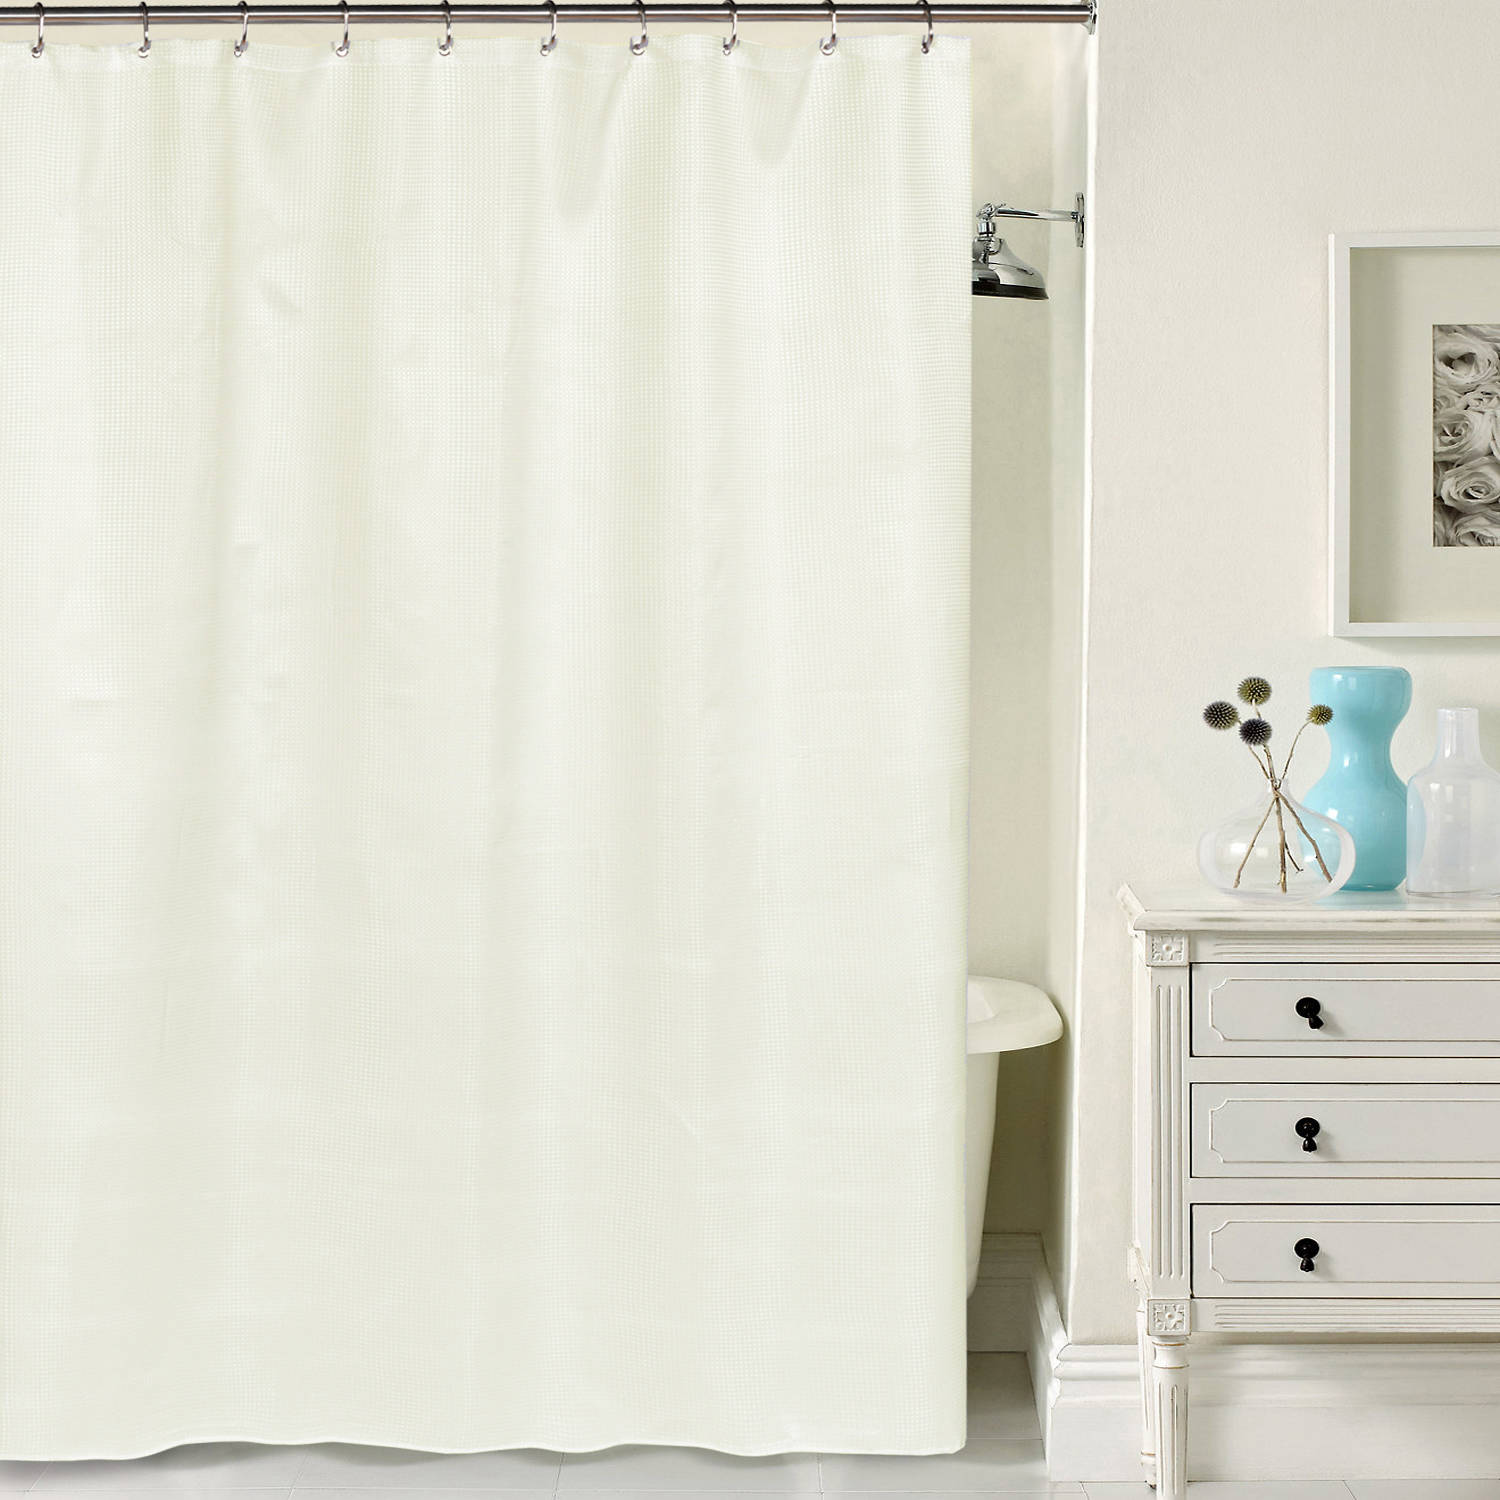 "Hotel Quality Waffle Weave Shower curtain with Metal Grommets, 70"" x 72"""